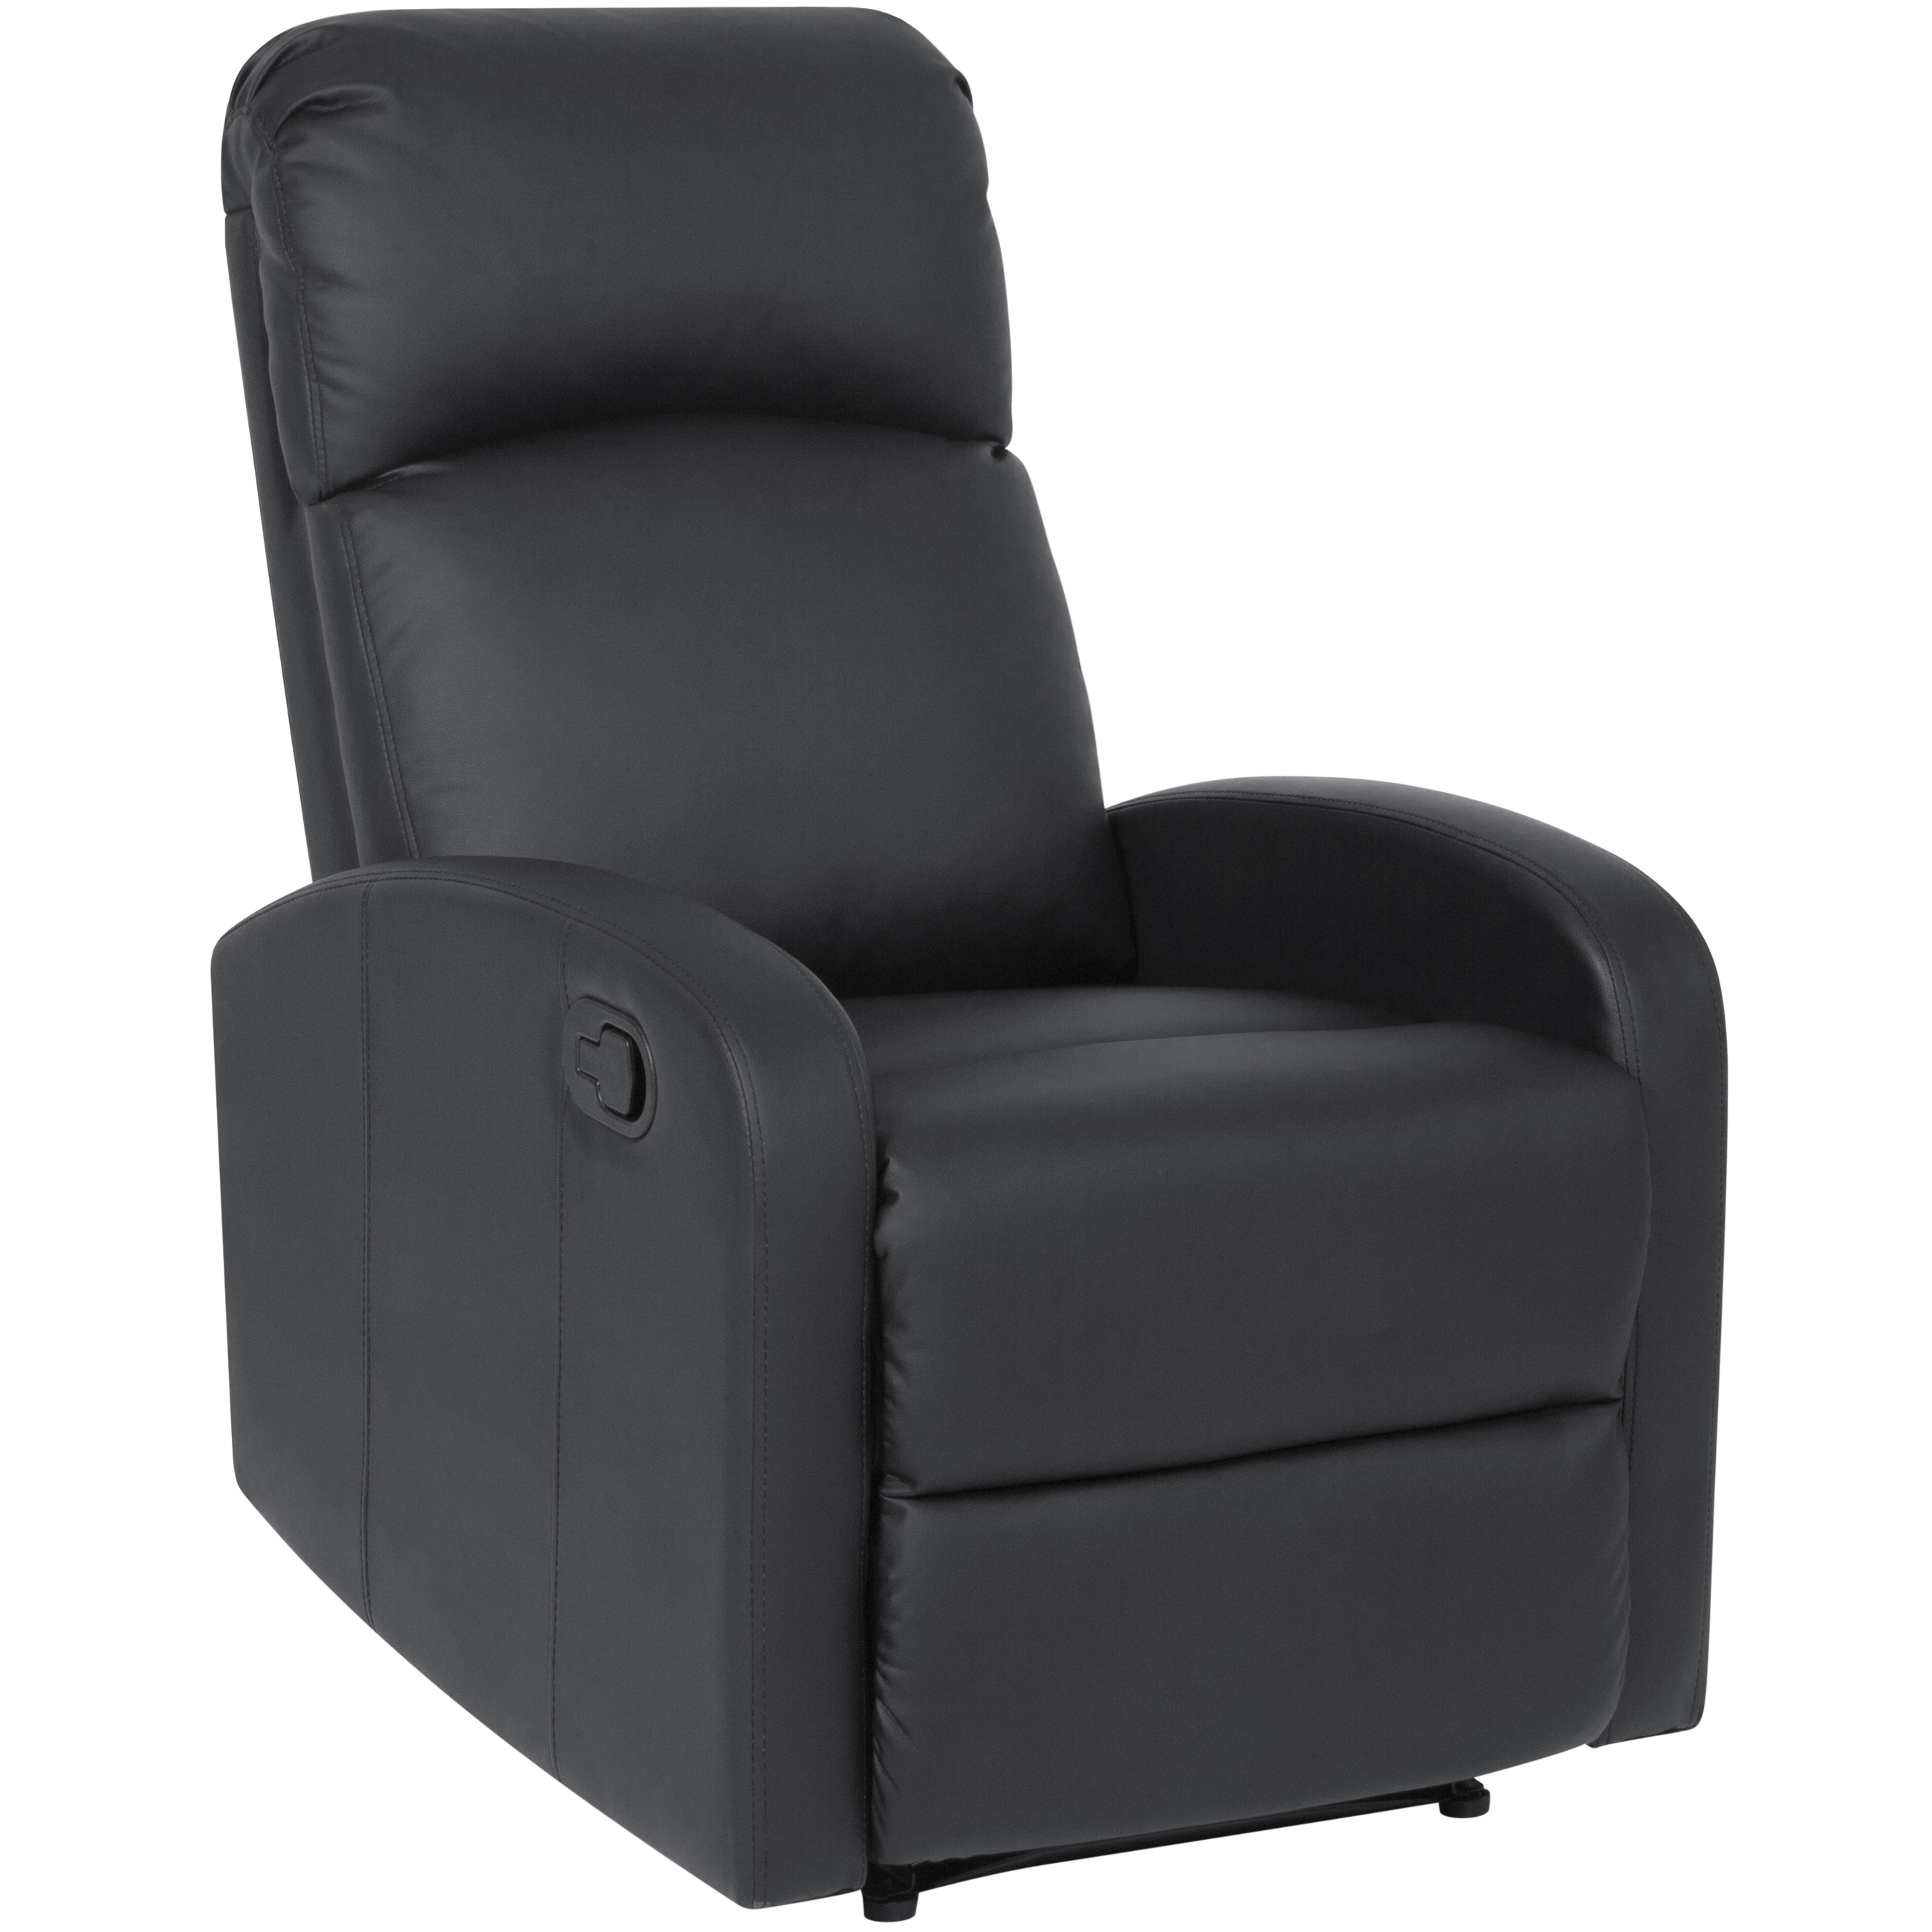 recliner chairs movie theater chair covers rental in jamaica best choice products home leather